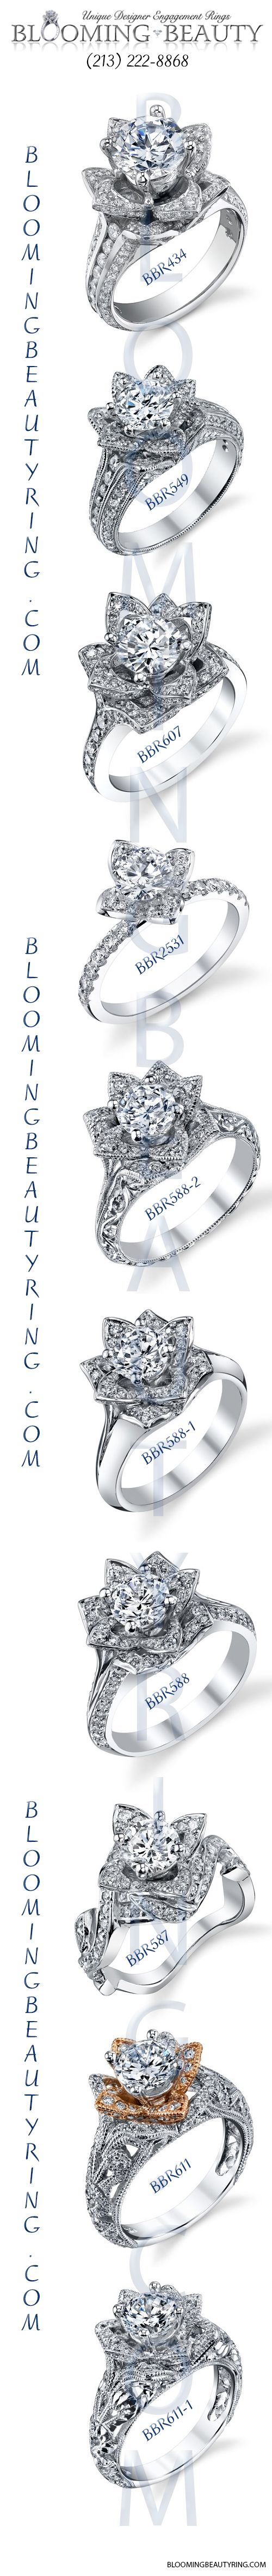 http://www.BloomingBeautyRing.com  A beautiful collection of #FlowerEngagementRings from an engagement ring designer in Los Angeles, CA.  #GorgeousFlowerRings !!